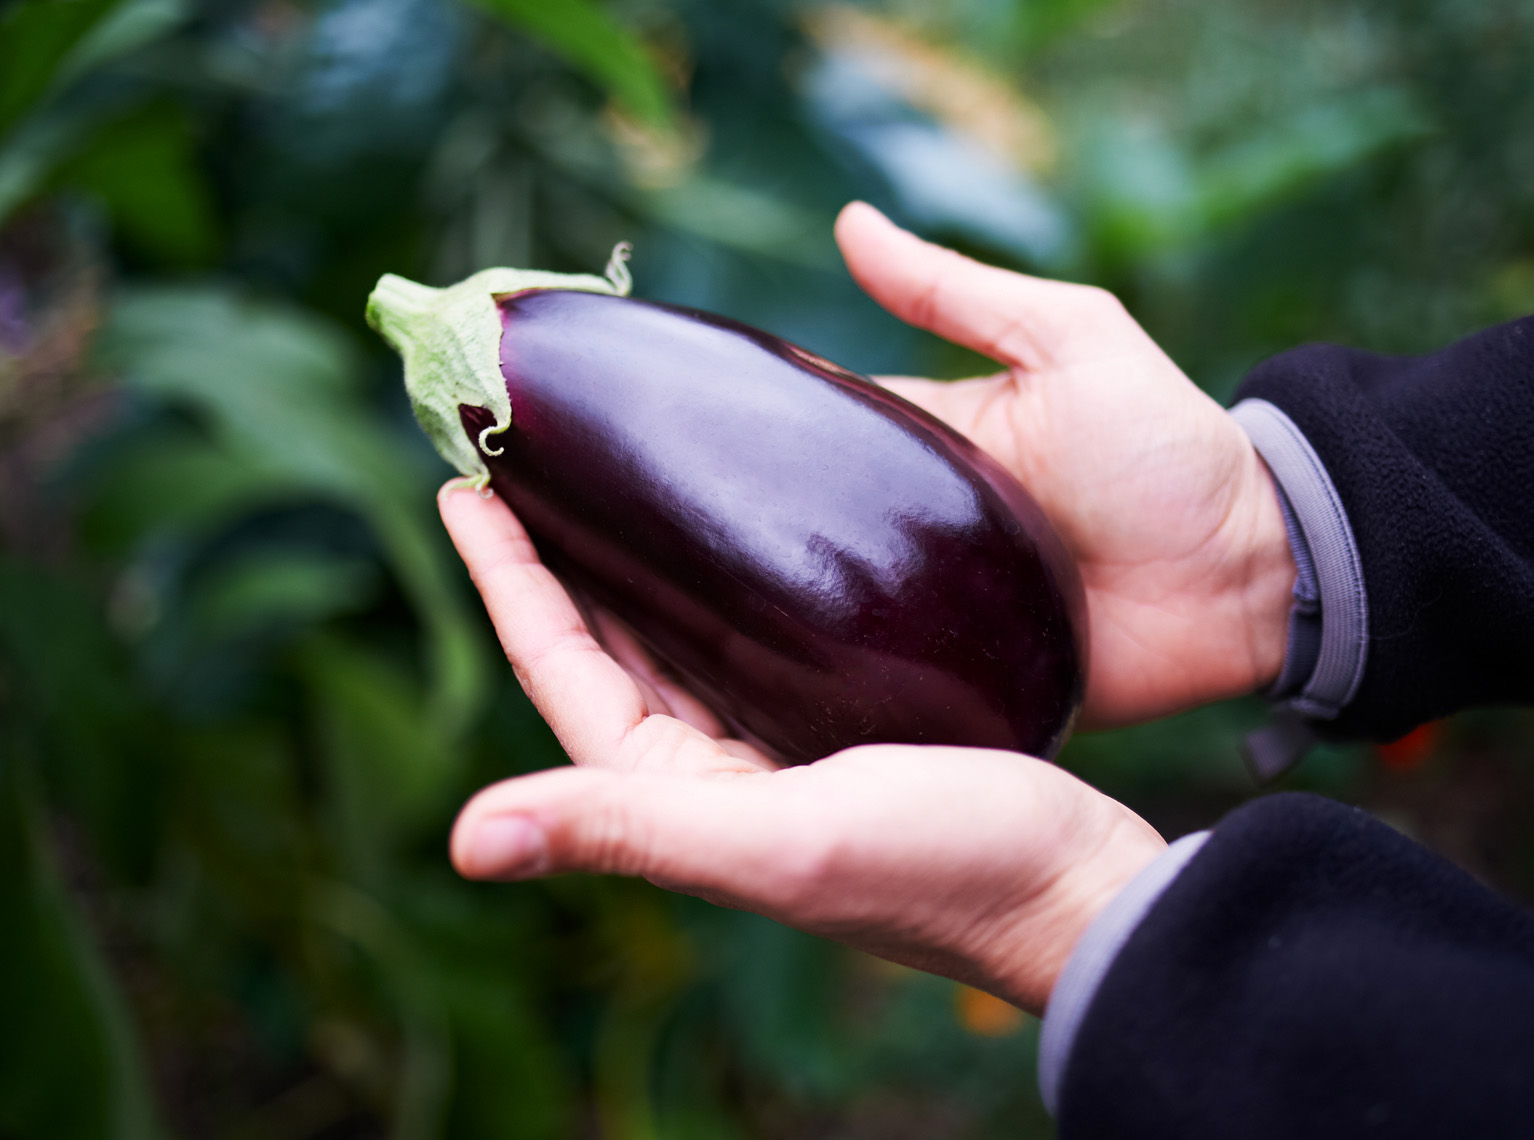 hands holding eggplant in garden lifestyle agriculture